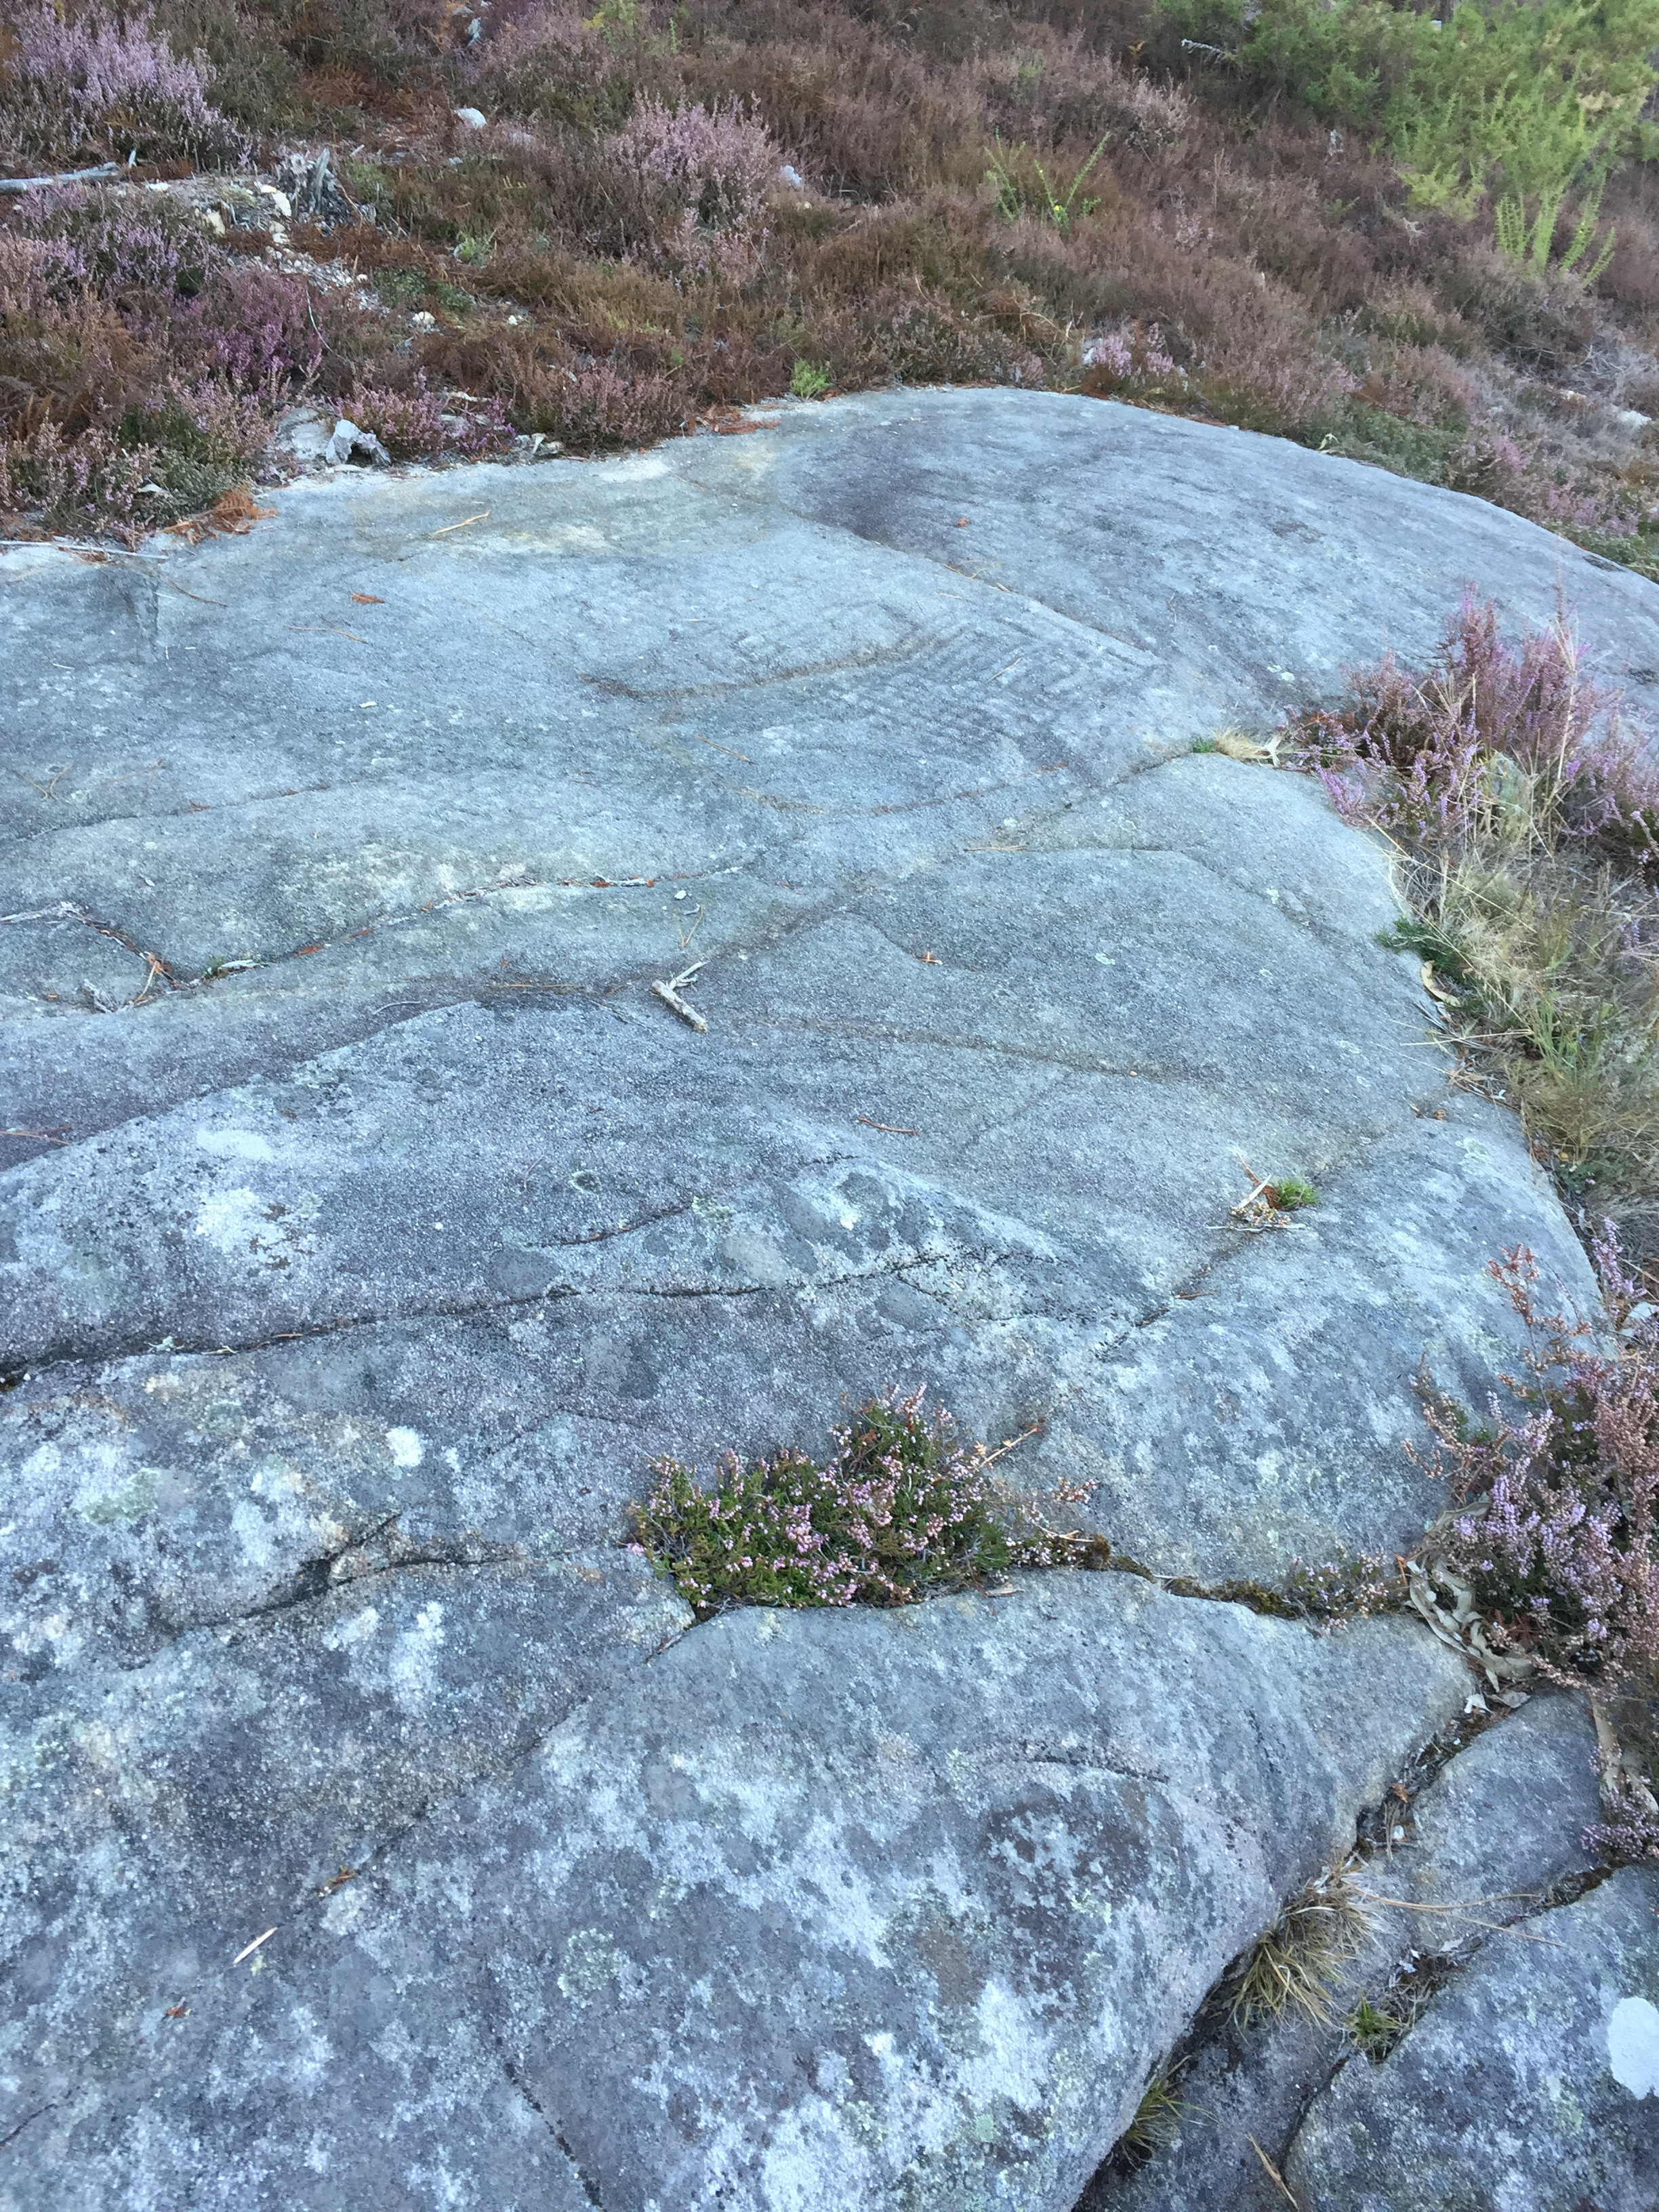 They have also uncovered bronze age petroglyphs in the area.